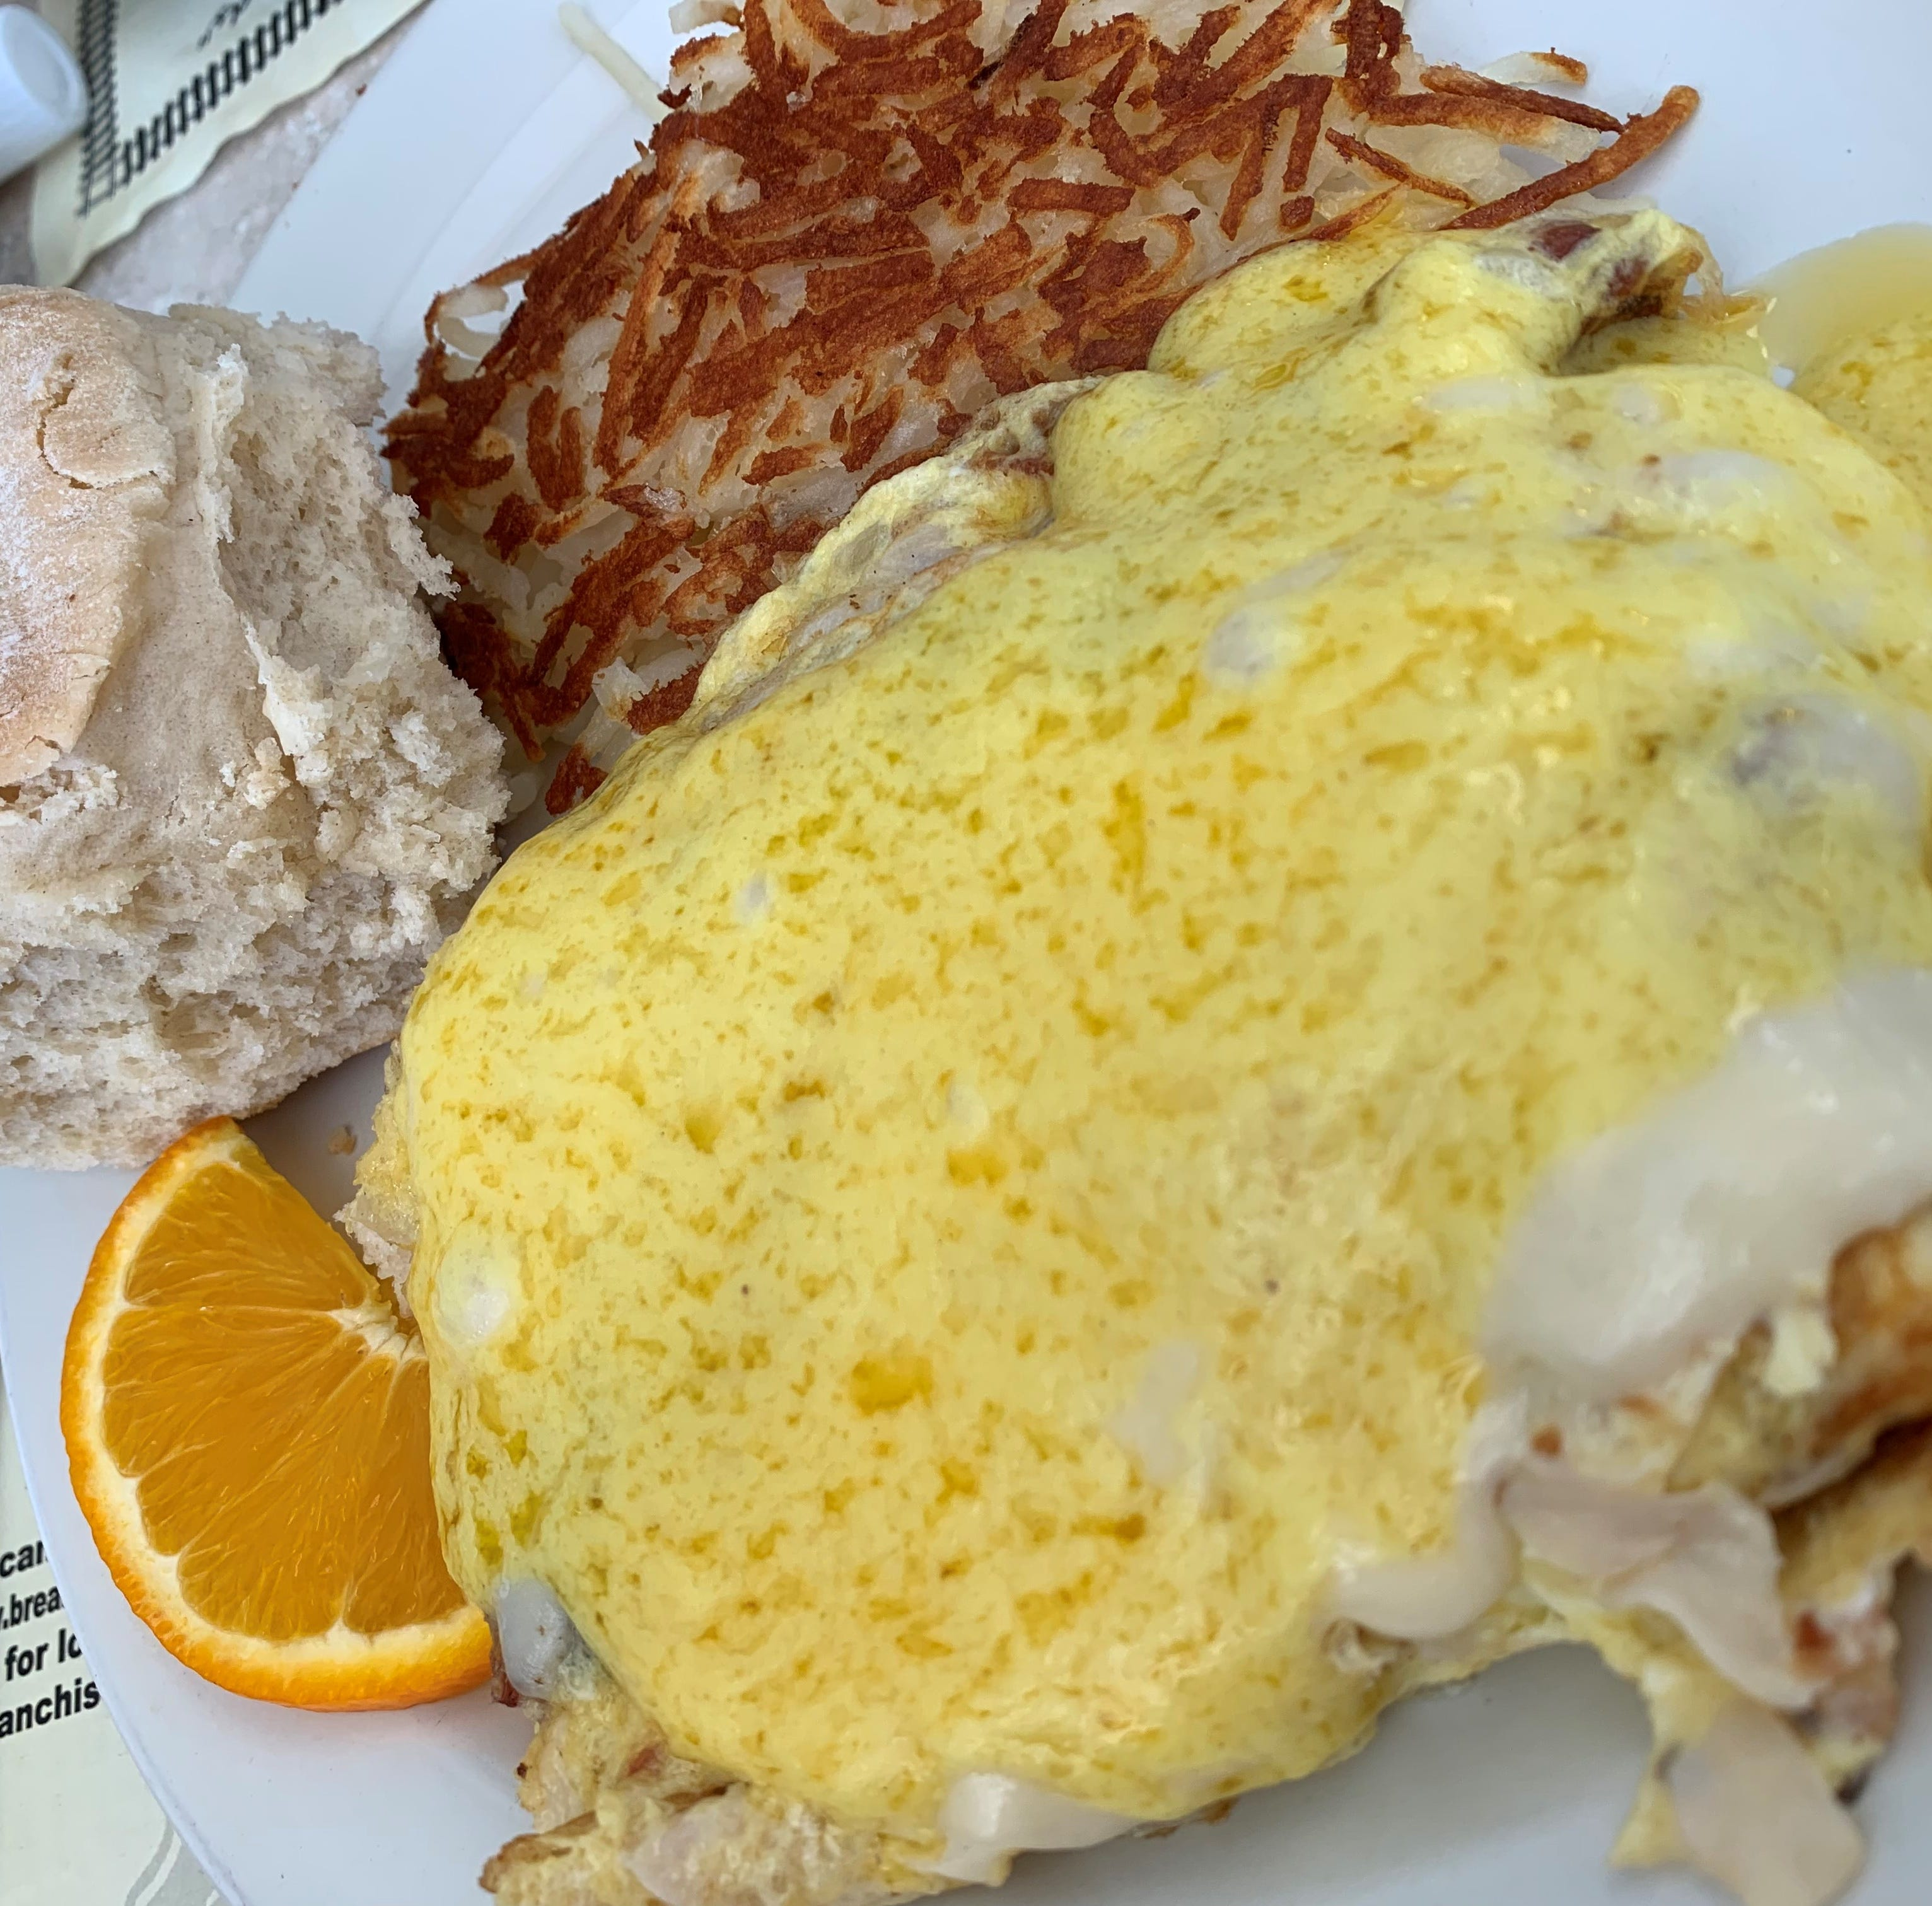 The Country Omelet at Breakfast Station was a thick, folded-over affair that contained lots of turkey and bacon, atop which was set a decent slice of Swiss cheese, under hot, bright yellow Hollandaise.